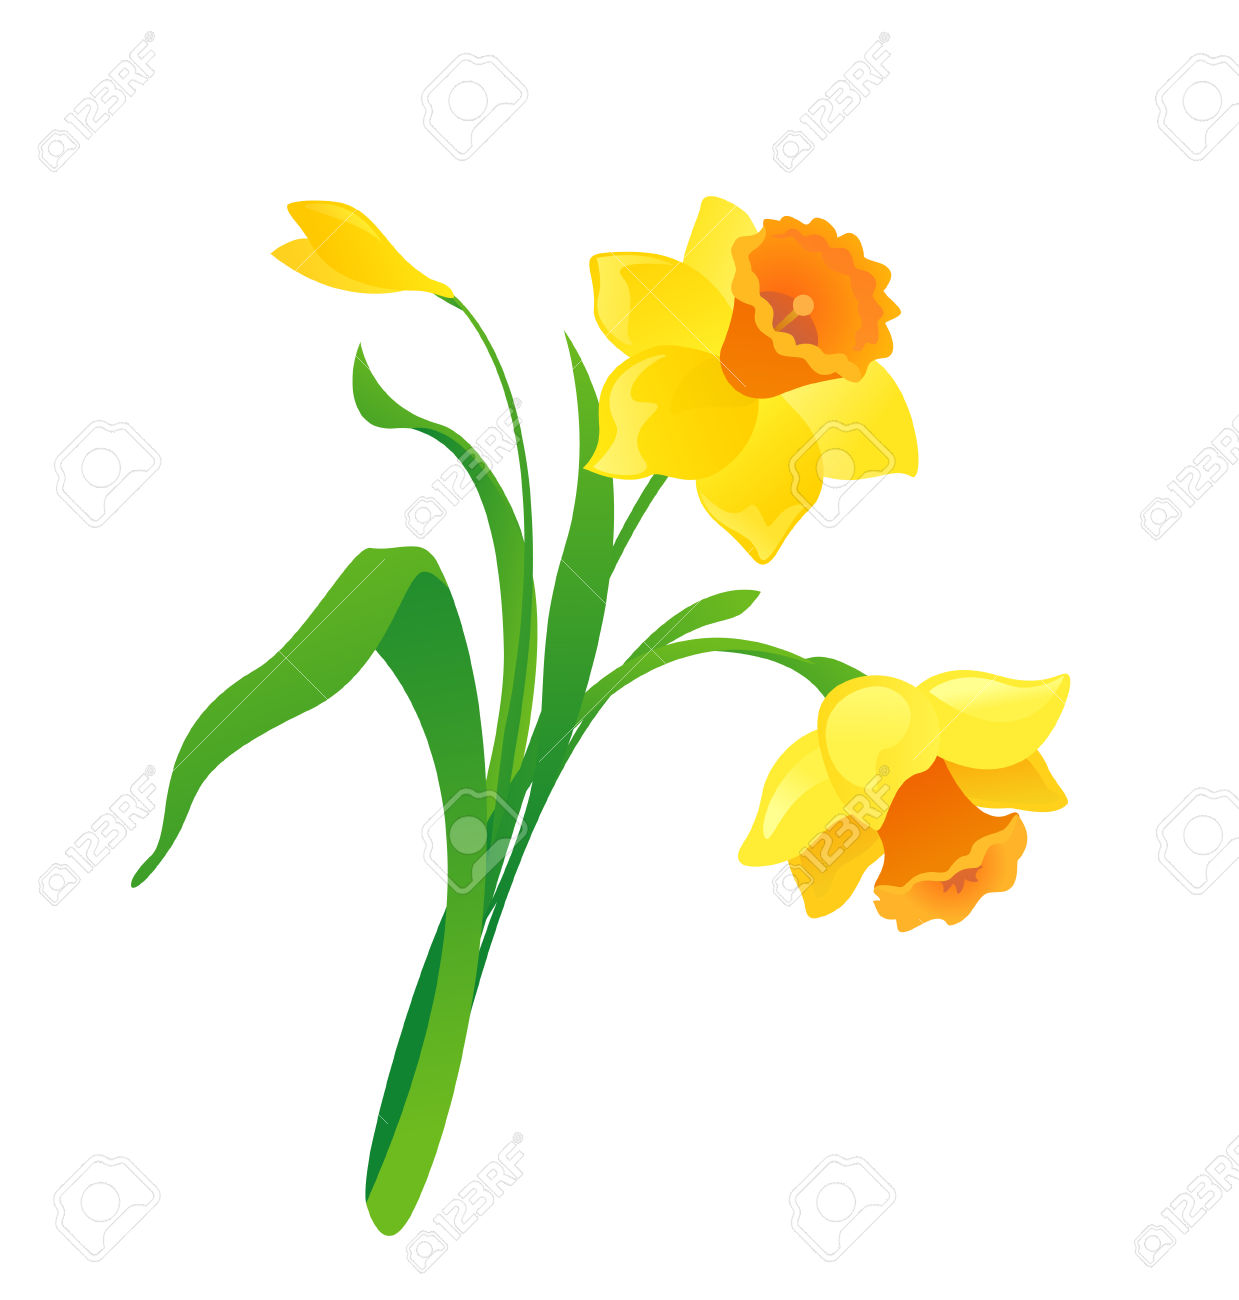 403 Jonquil Stock Vector Illustration And Royalty Free Jonquil Clipart.